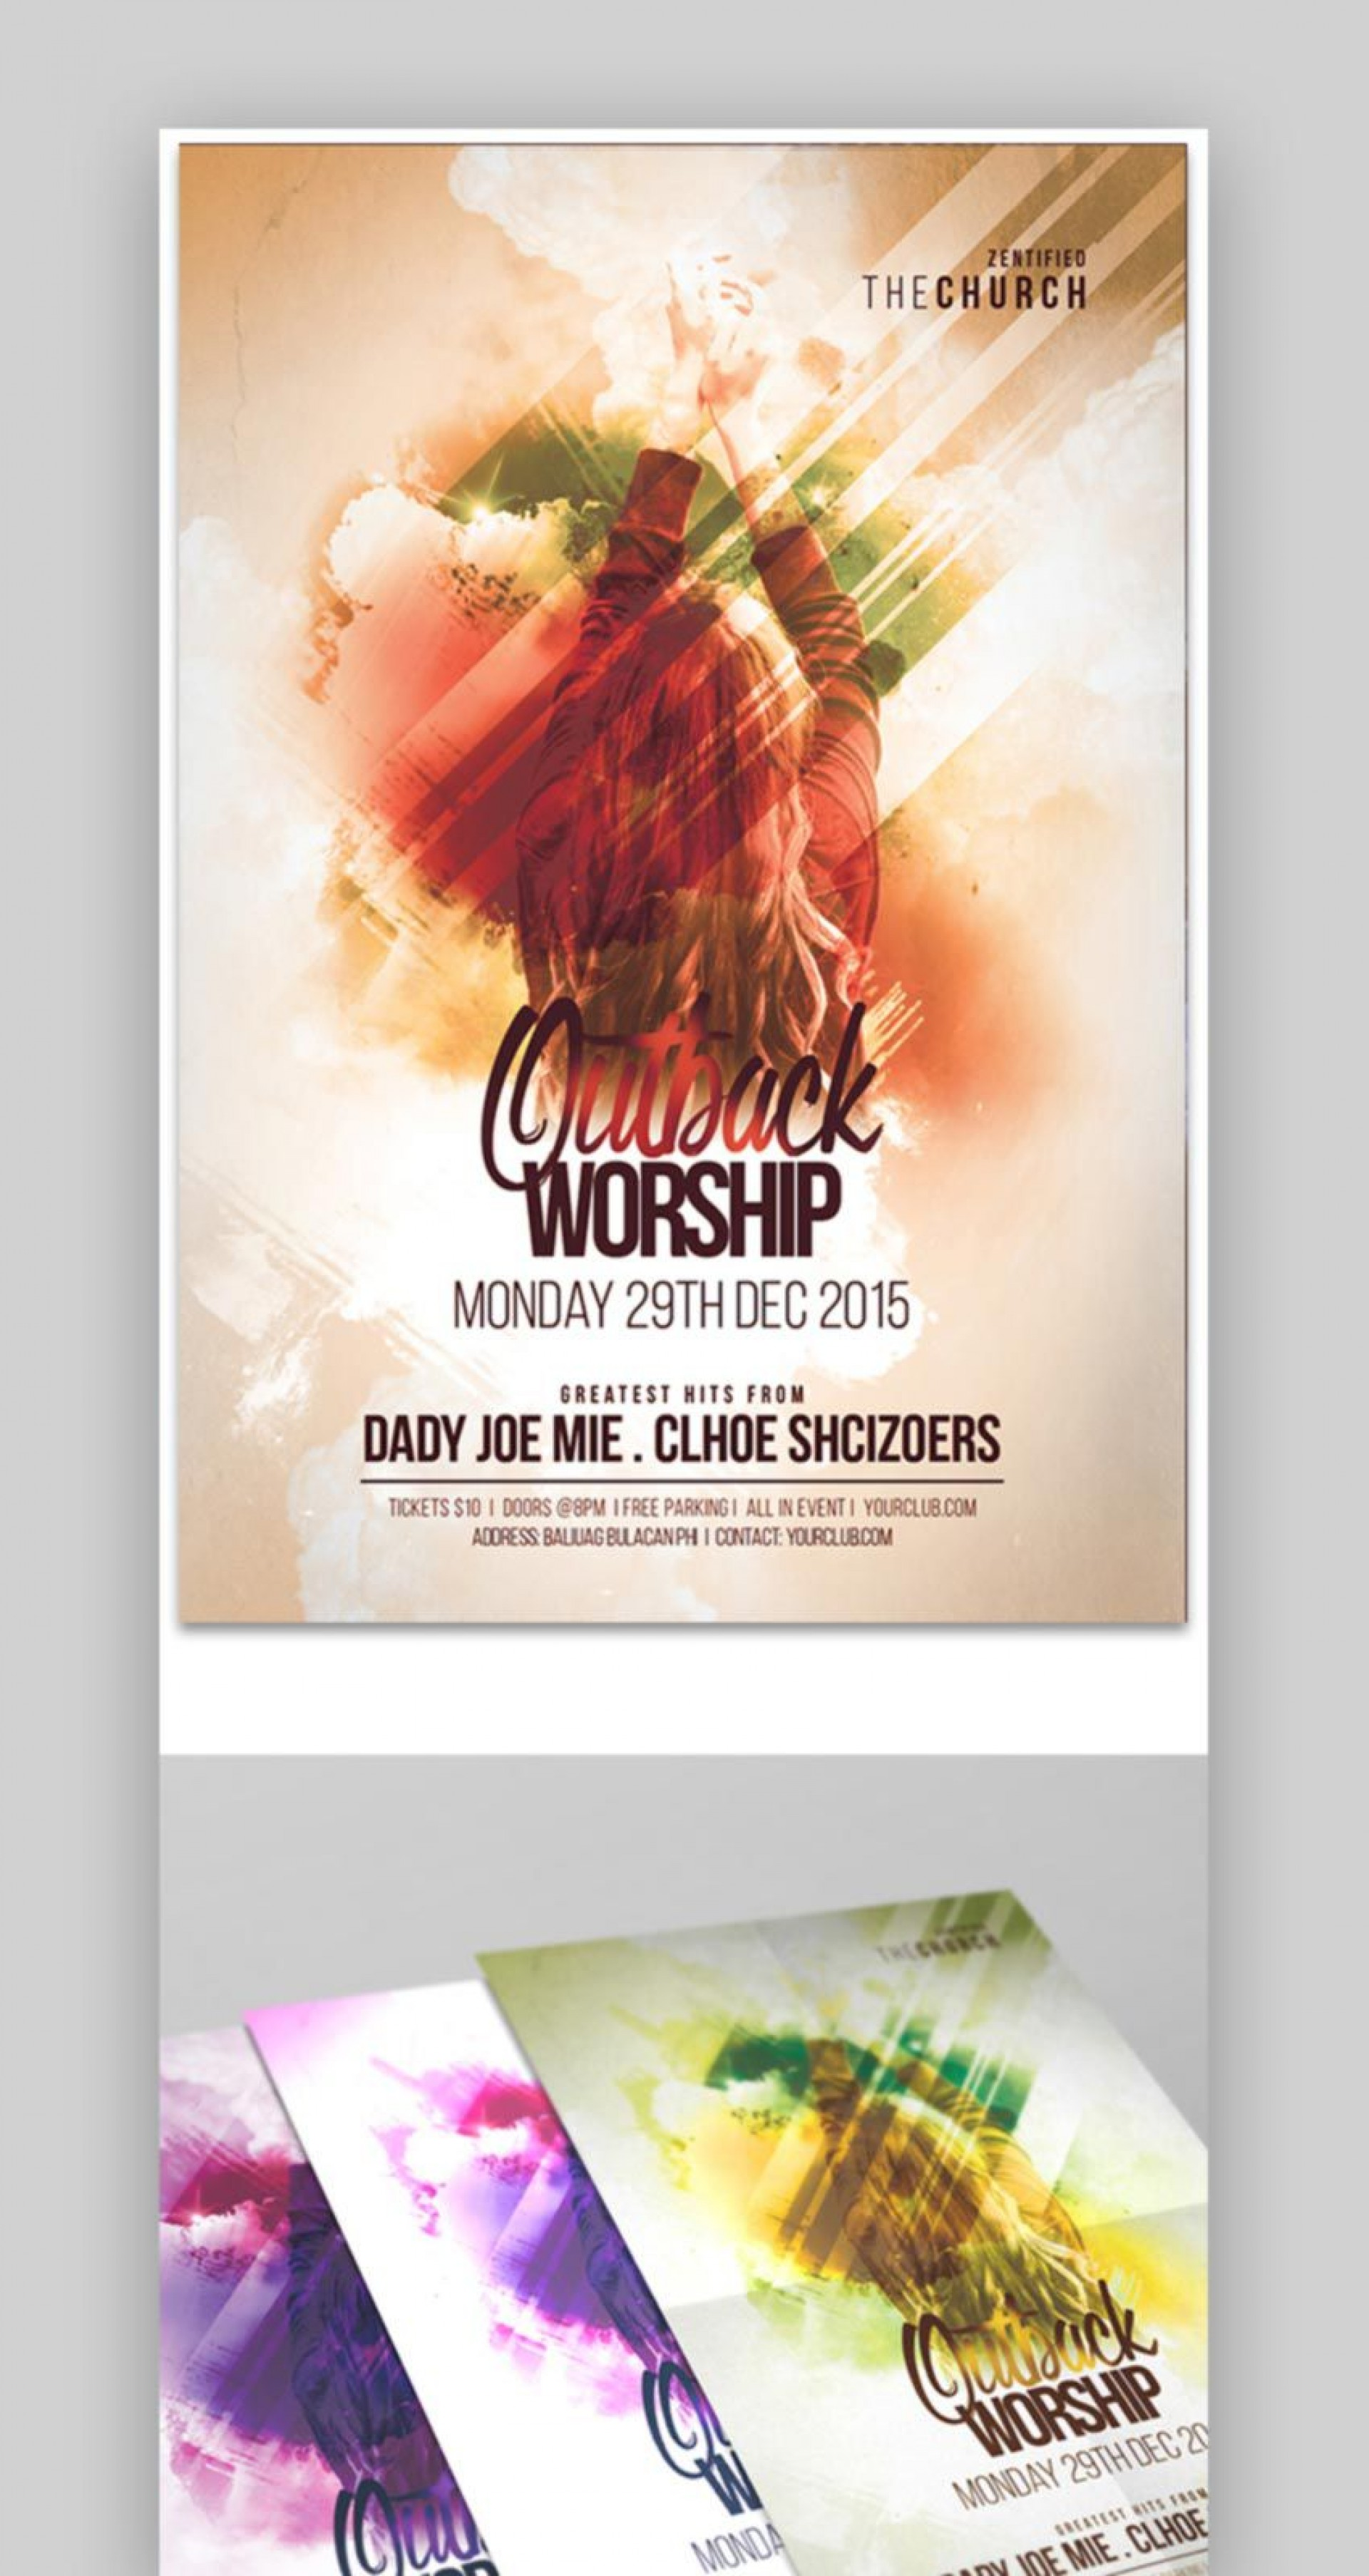 010 Wonderful Church Flyer Template Free Inspiration  Easter Anniversary Conference Psd1920